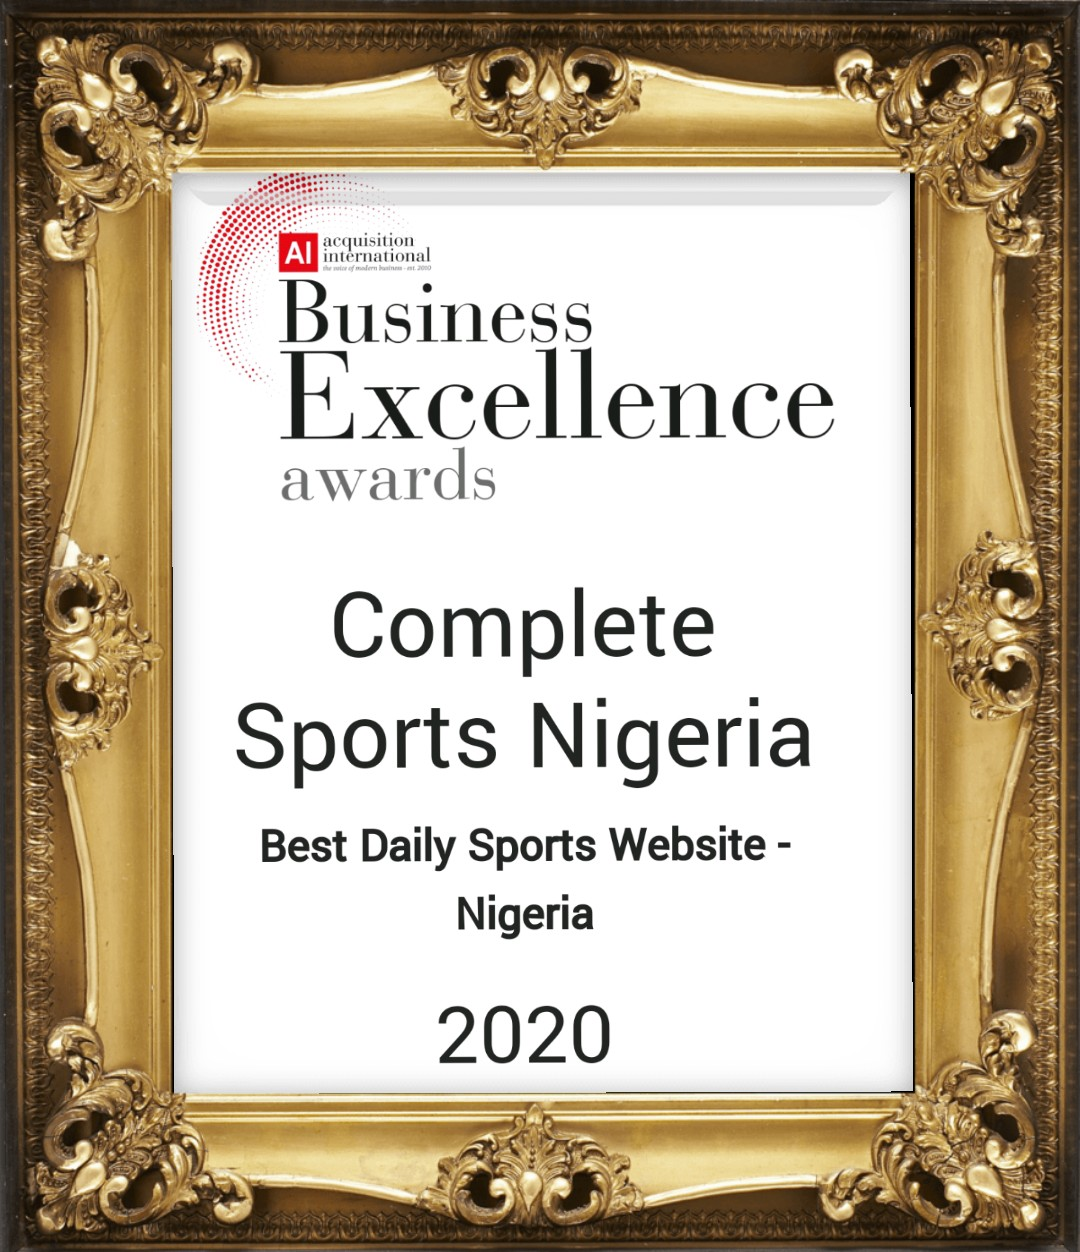 Completesports.com Crowned Nigeria's Best Daily Sports Website Again